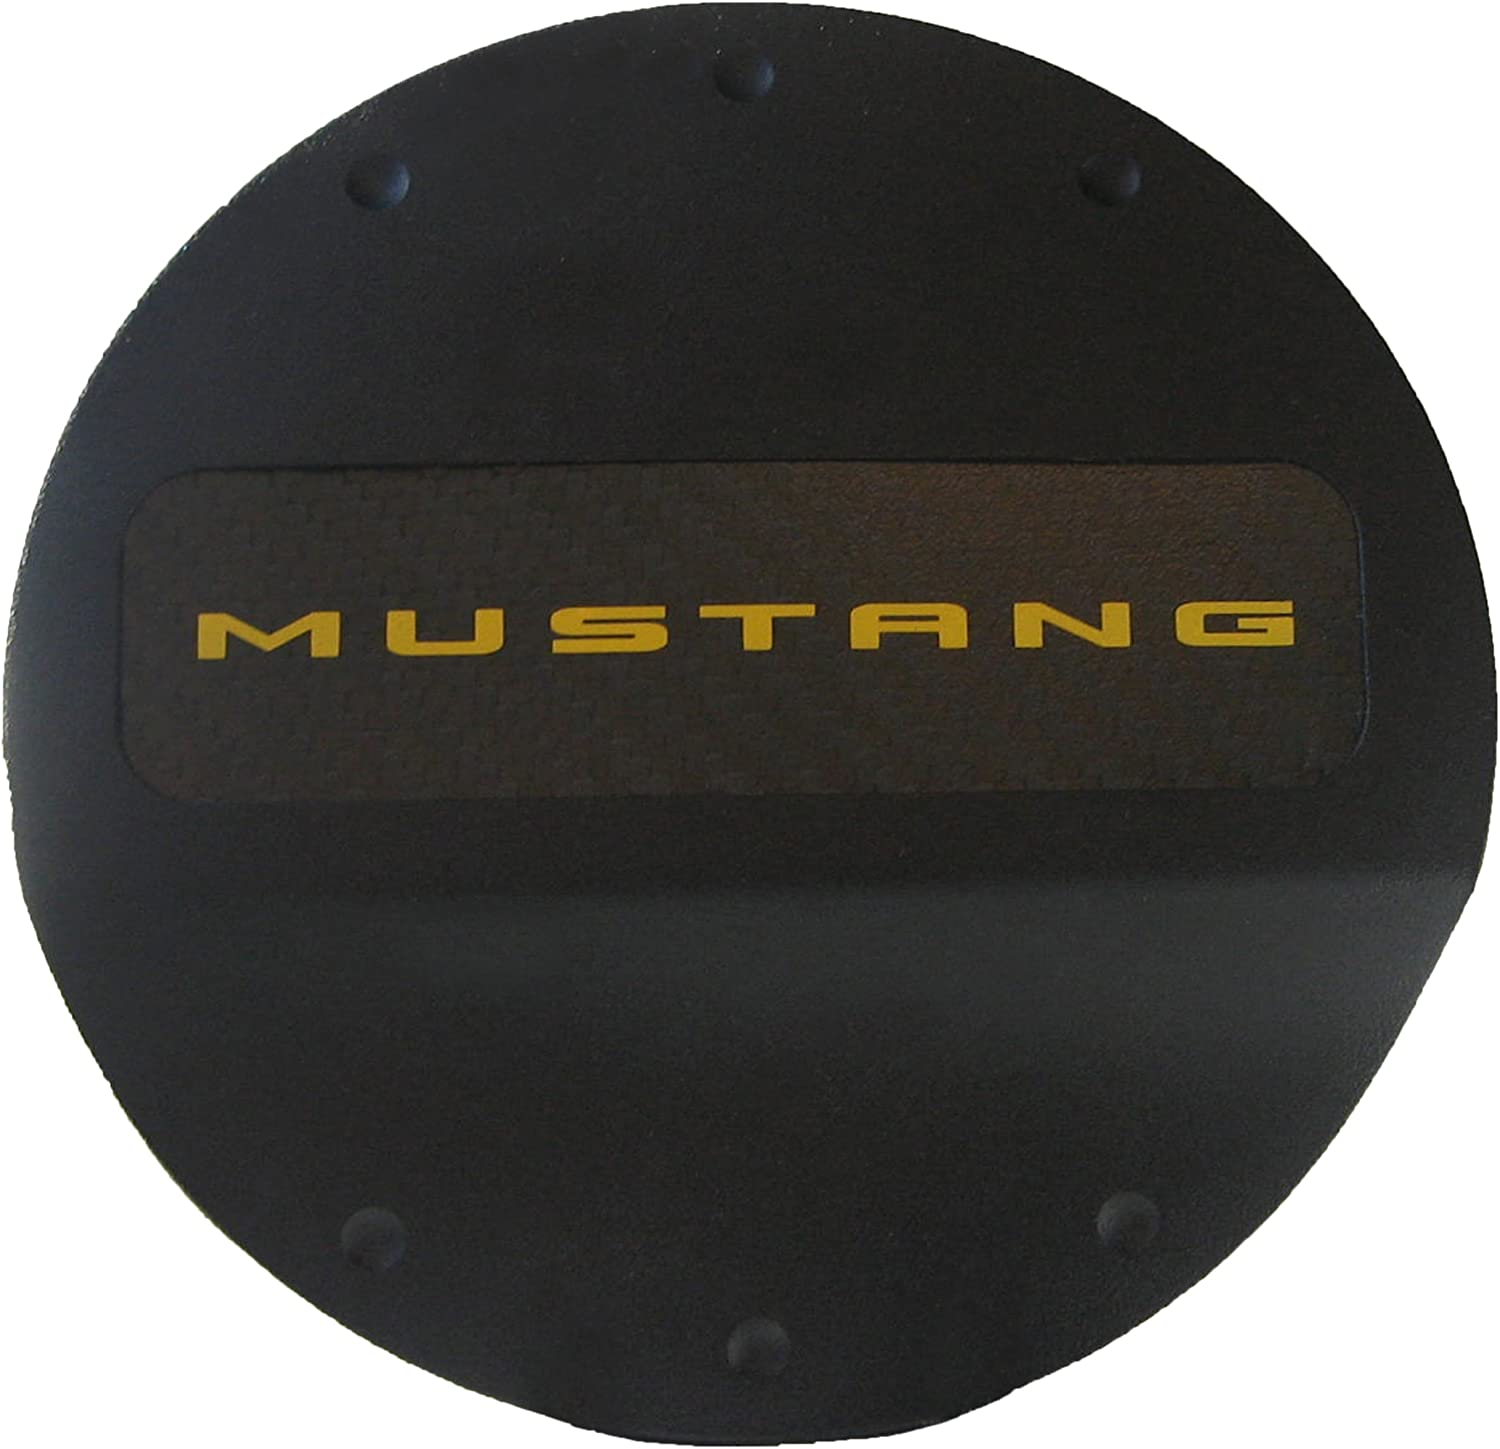 Defenderworx 901426 Black Fuel Door with Yellow Ford Mustang Logo